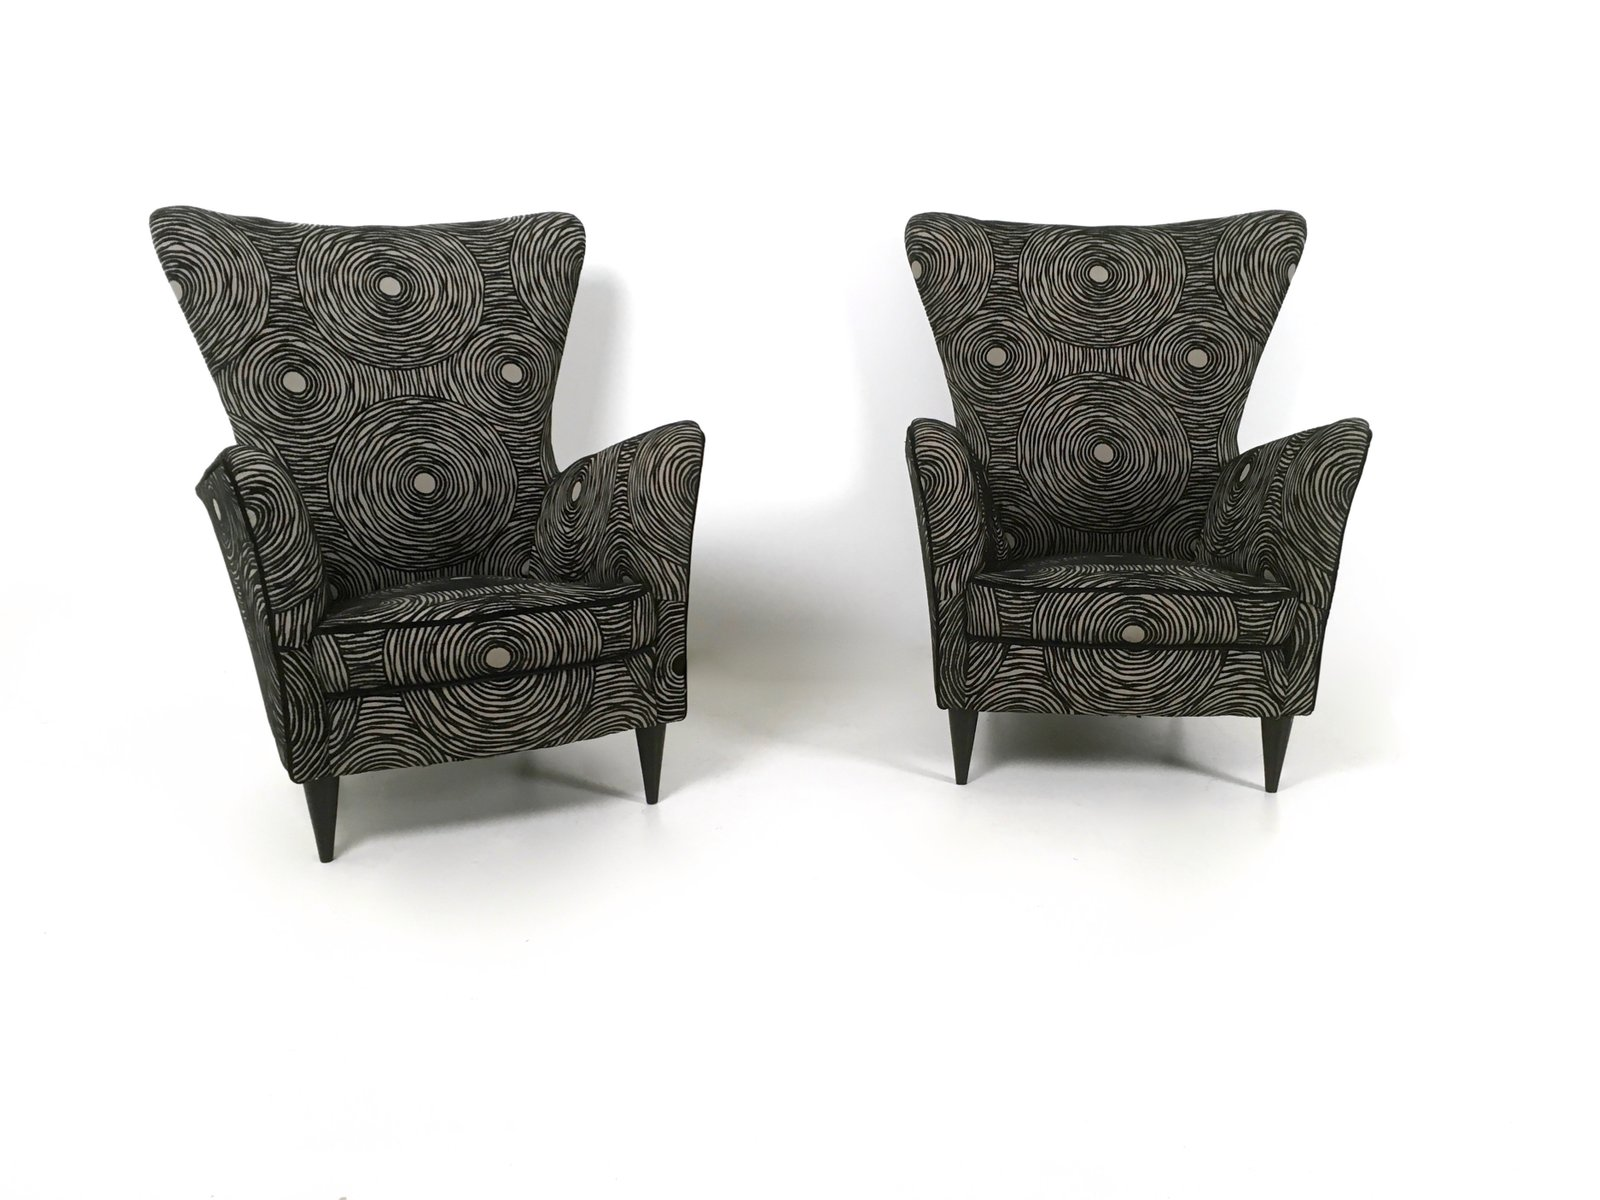 italian grey black patterned armchairs 1950s set of 2